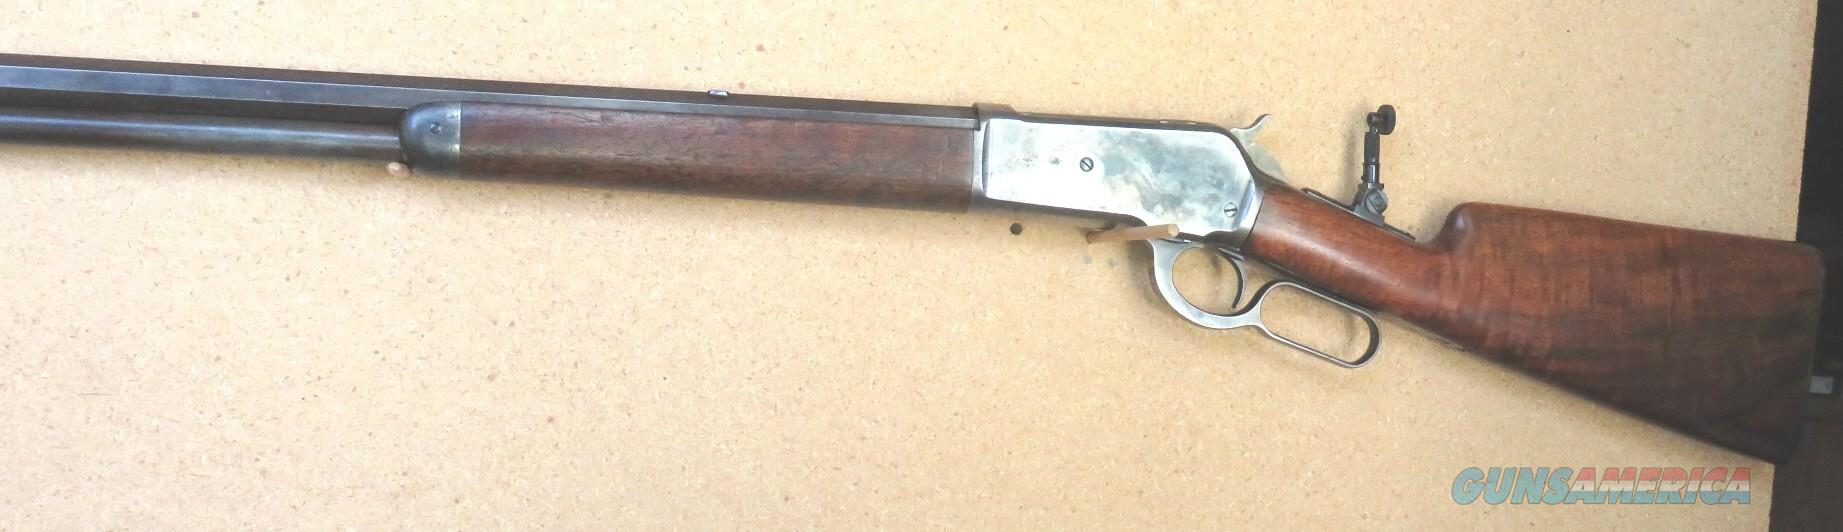 1886 Winchester Rifle, Antique, Cal. 40-65 Win,  26' Oct Bbl, Case Hardened Receiver, Shotgun Butt, Full mag.  Guns > Rifles > Winchester Rifles - Modern Lever > Other Lever > Pre-64